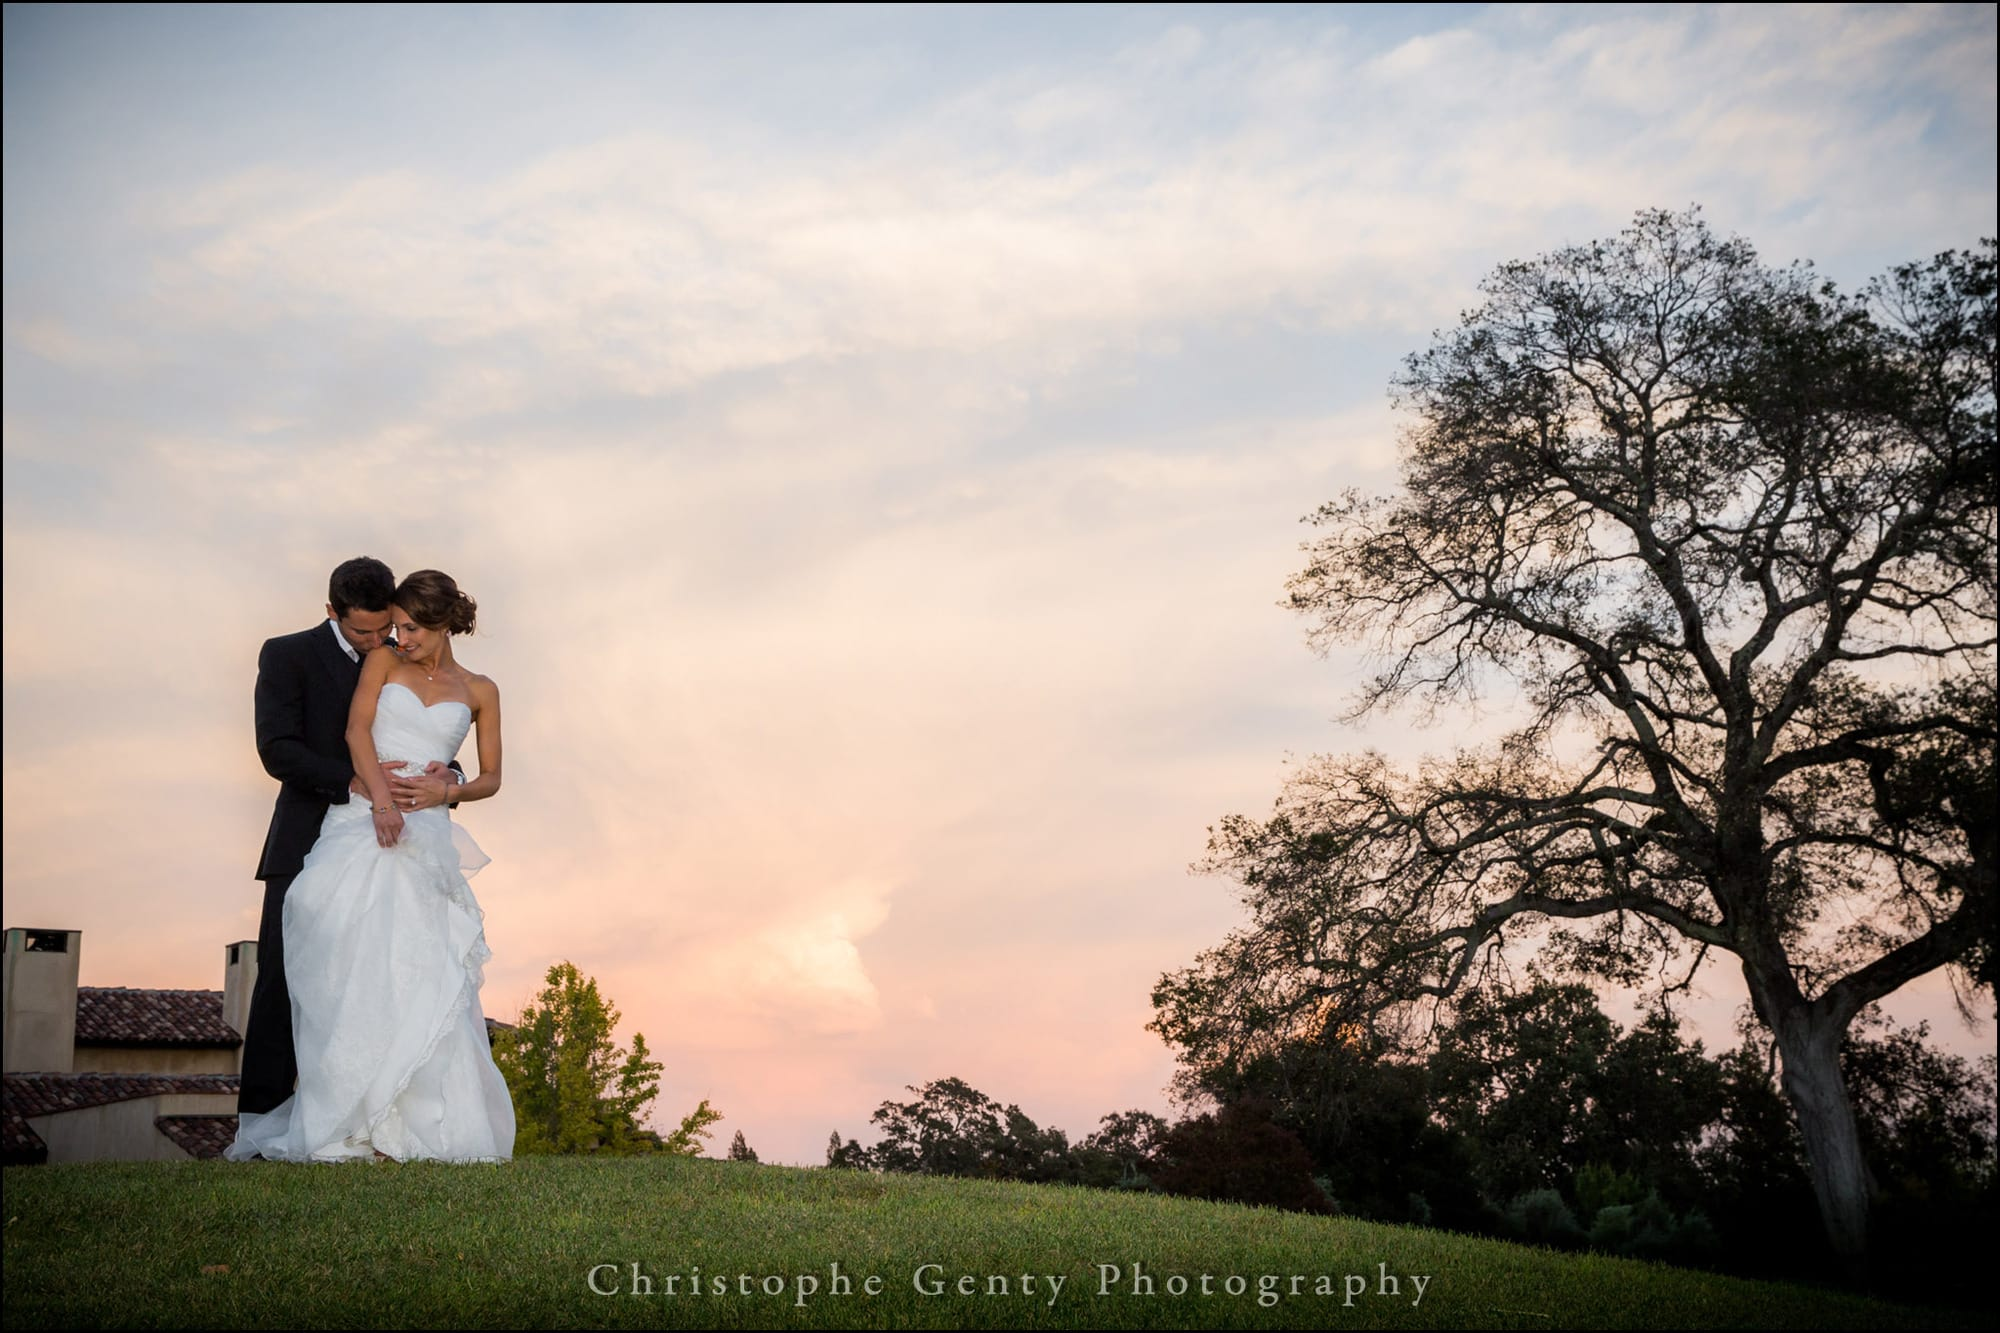 Wedding Photography at the Sonoma Mission Inn golf Club, Sonoma CA